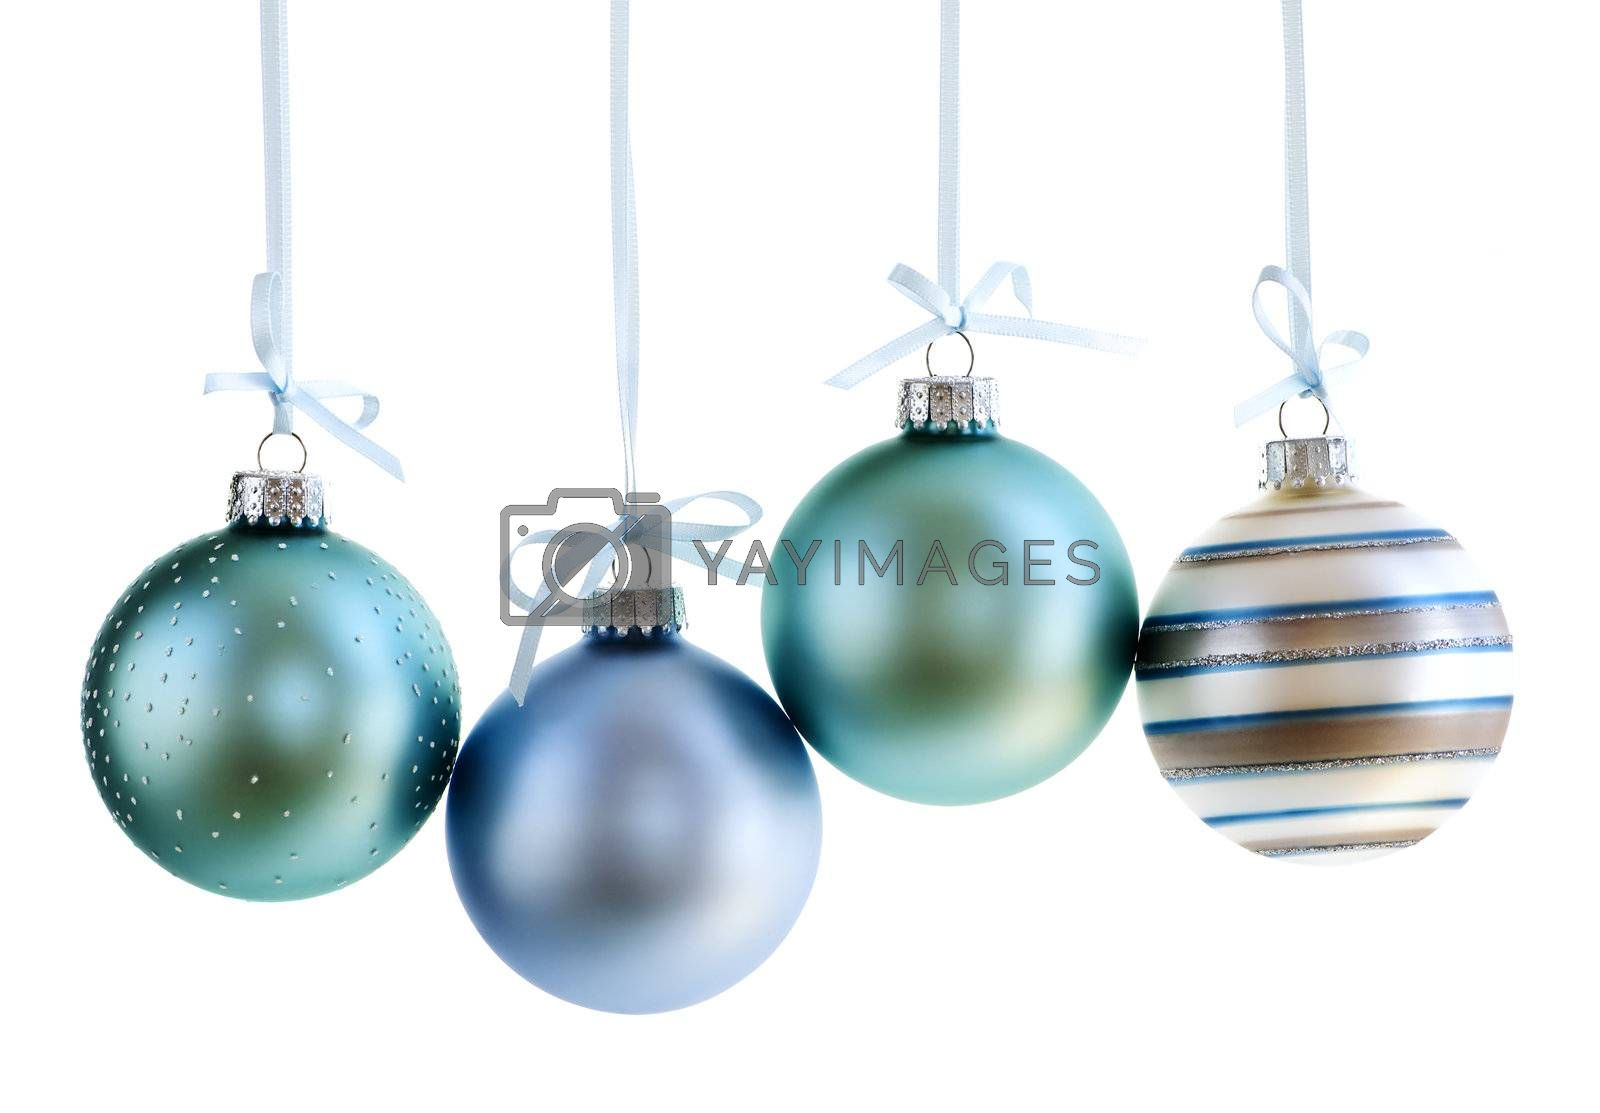 Royalty free image of Christmas ornaments by elenathewise